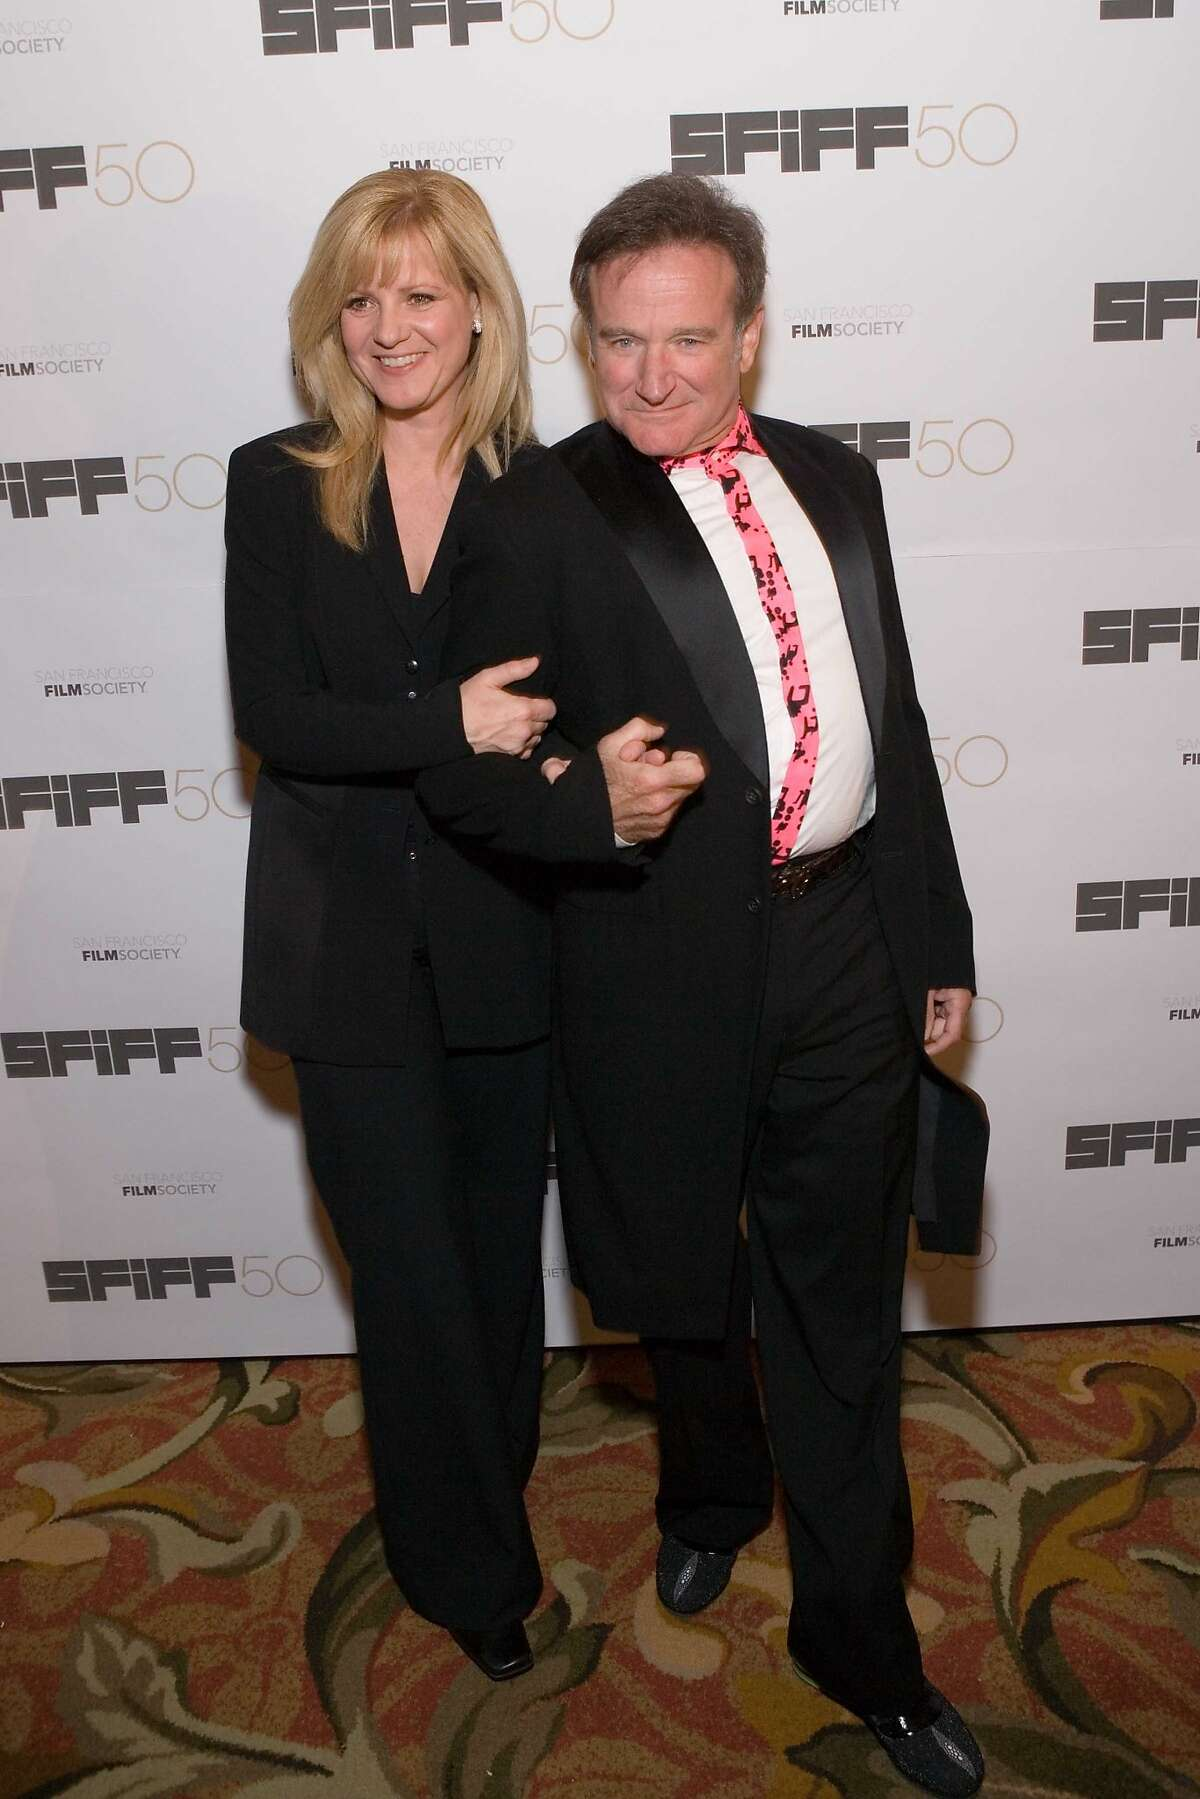 The San Francisco Film Society hosted its 50th Awards Gala at the St. Francis Hotel. From left: Comedian Bonnie Hunt presented the Film Award to Robin Williams..